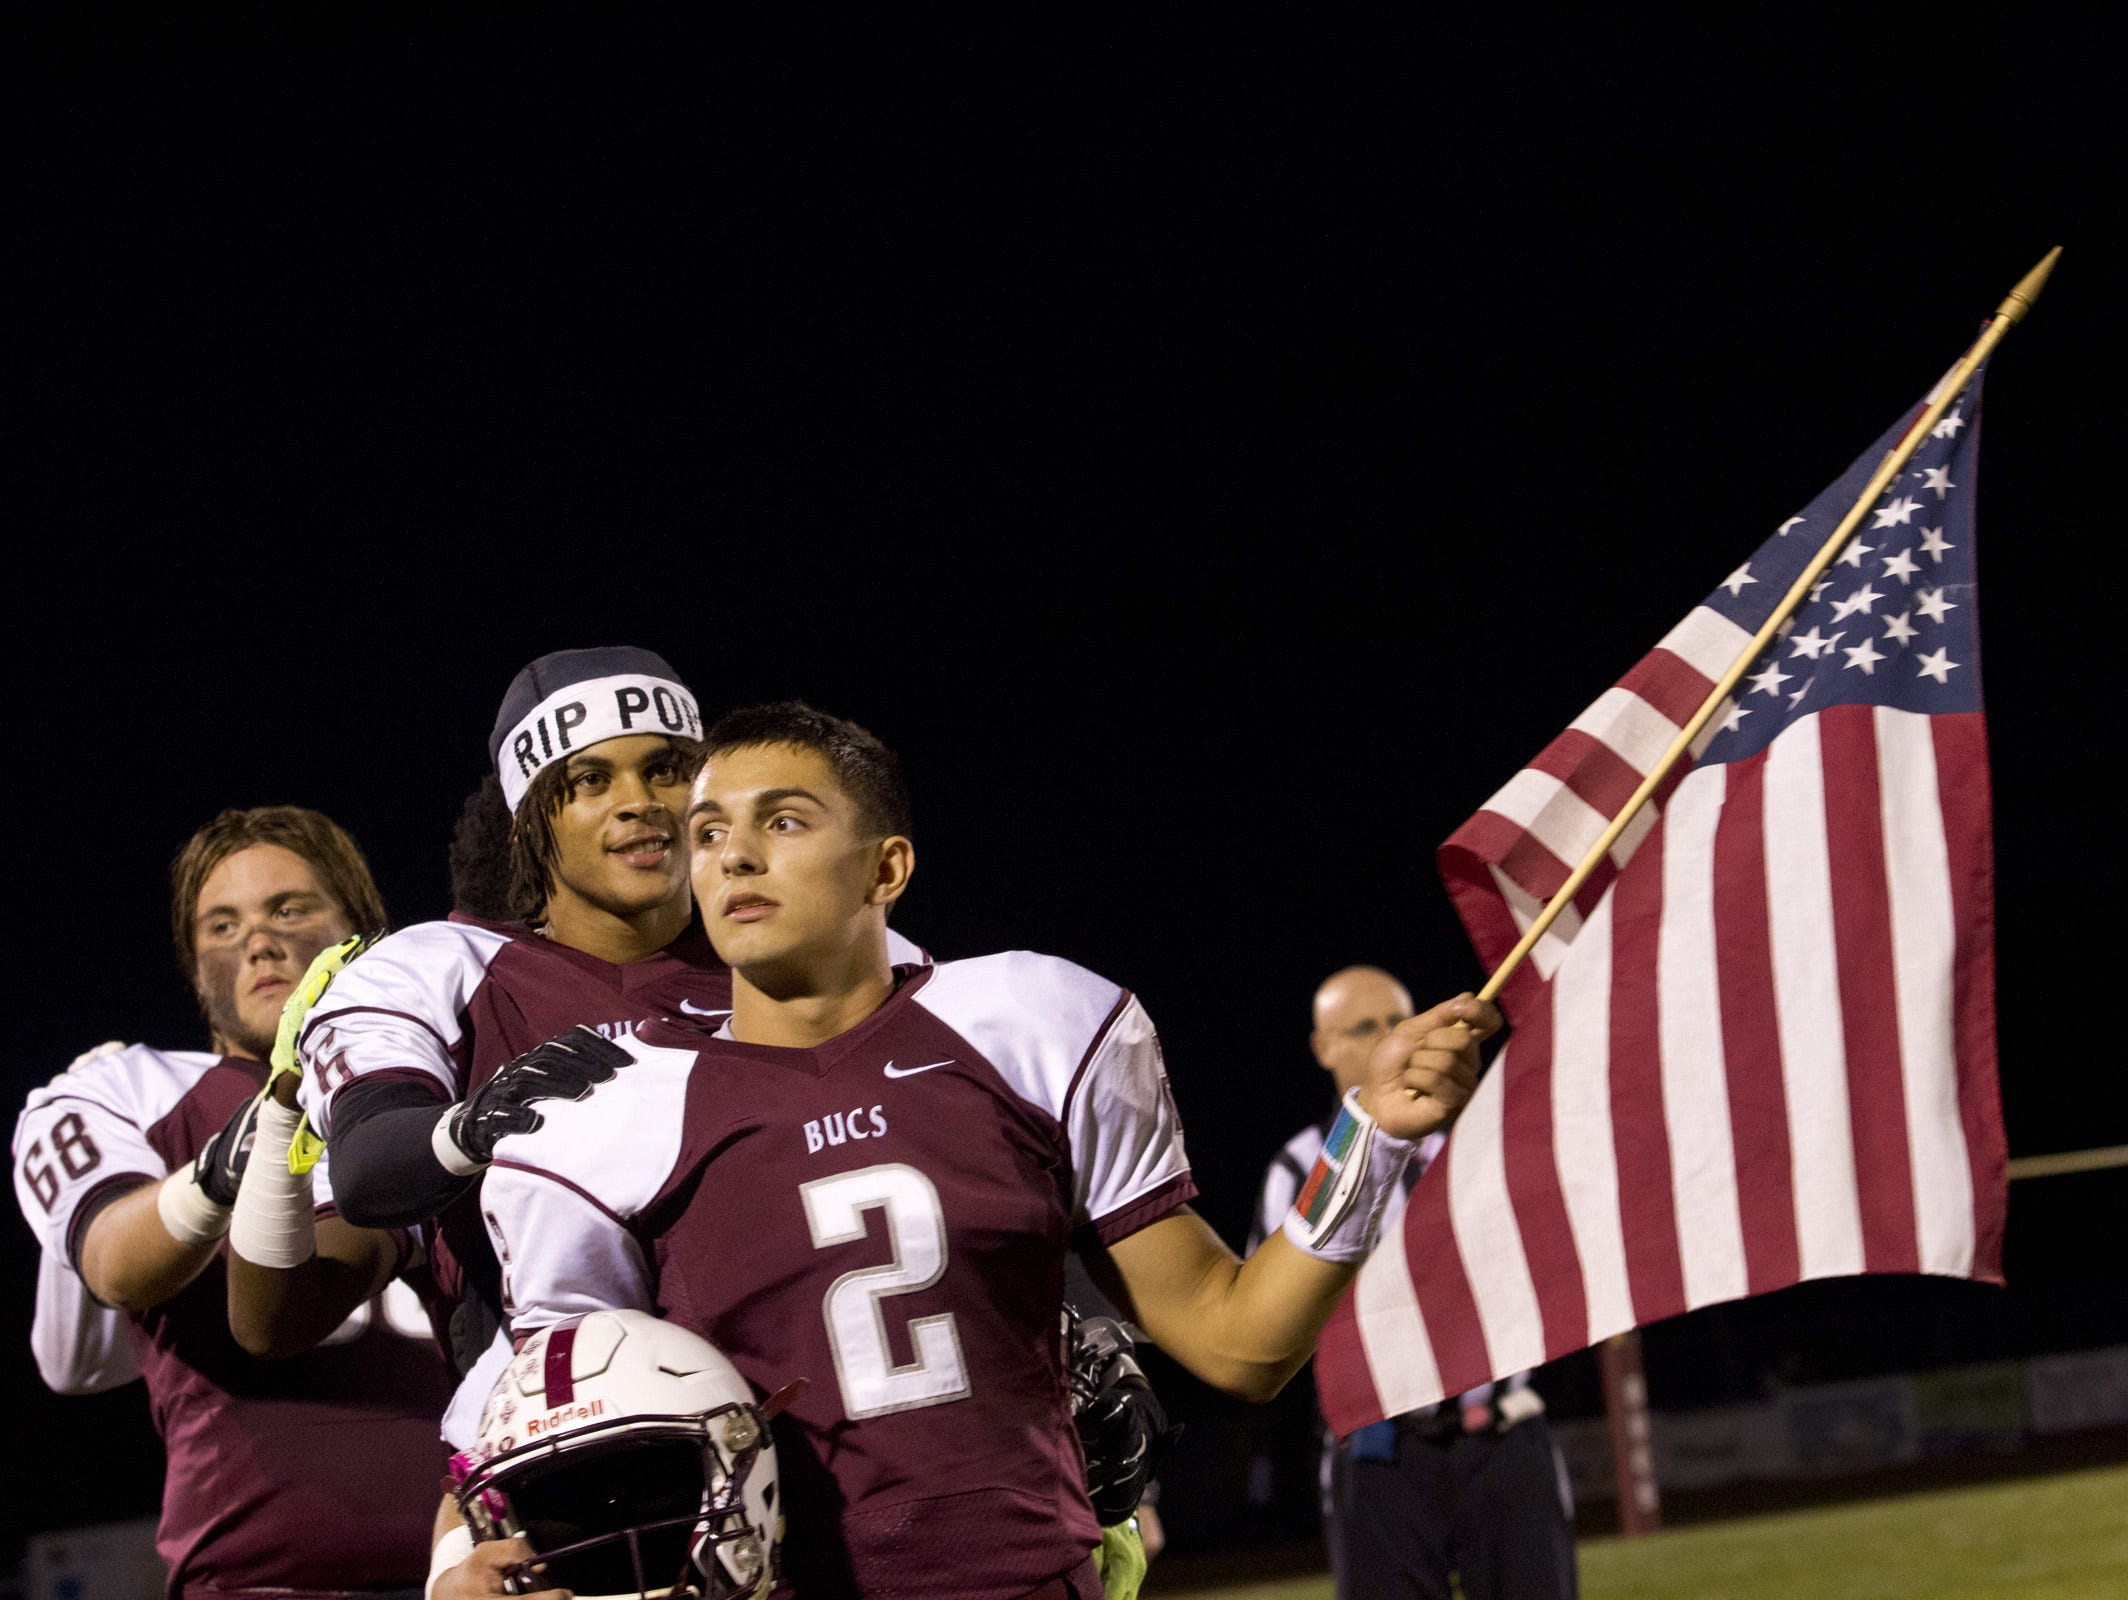 Red Bank Regional quarterback Jack Navitsky holds a flag as the National Anthem plays prior to game against Red Bank Catholic. Red Bank Catholic vs Red Bank Regional Football on October 16, 2015 in Red Bank.